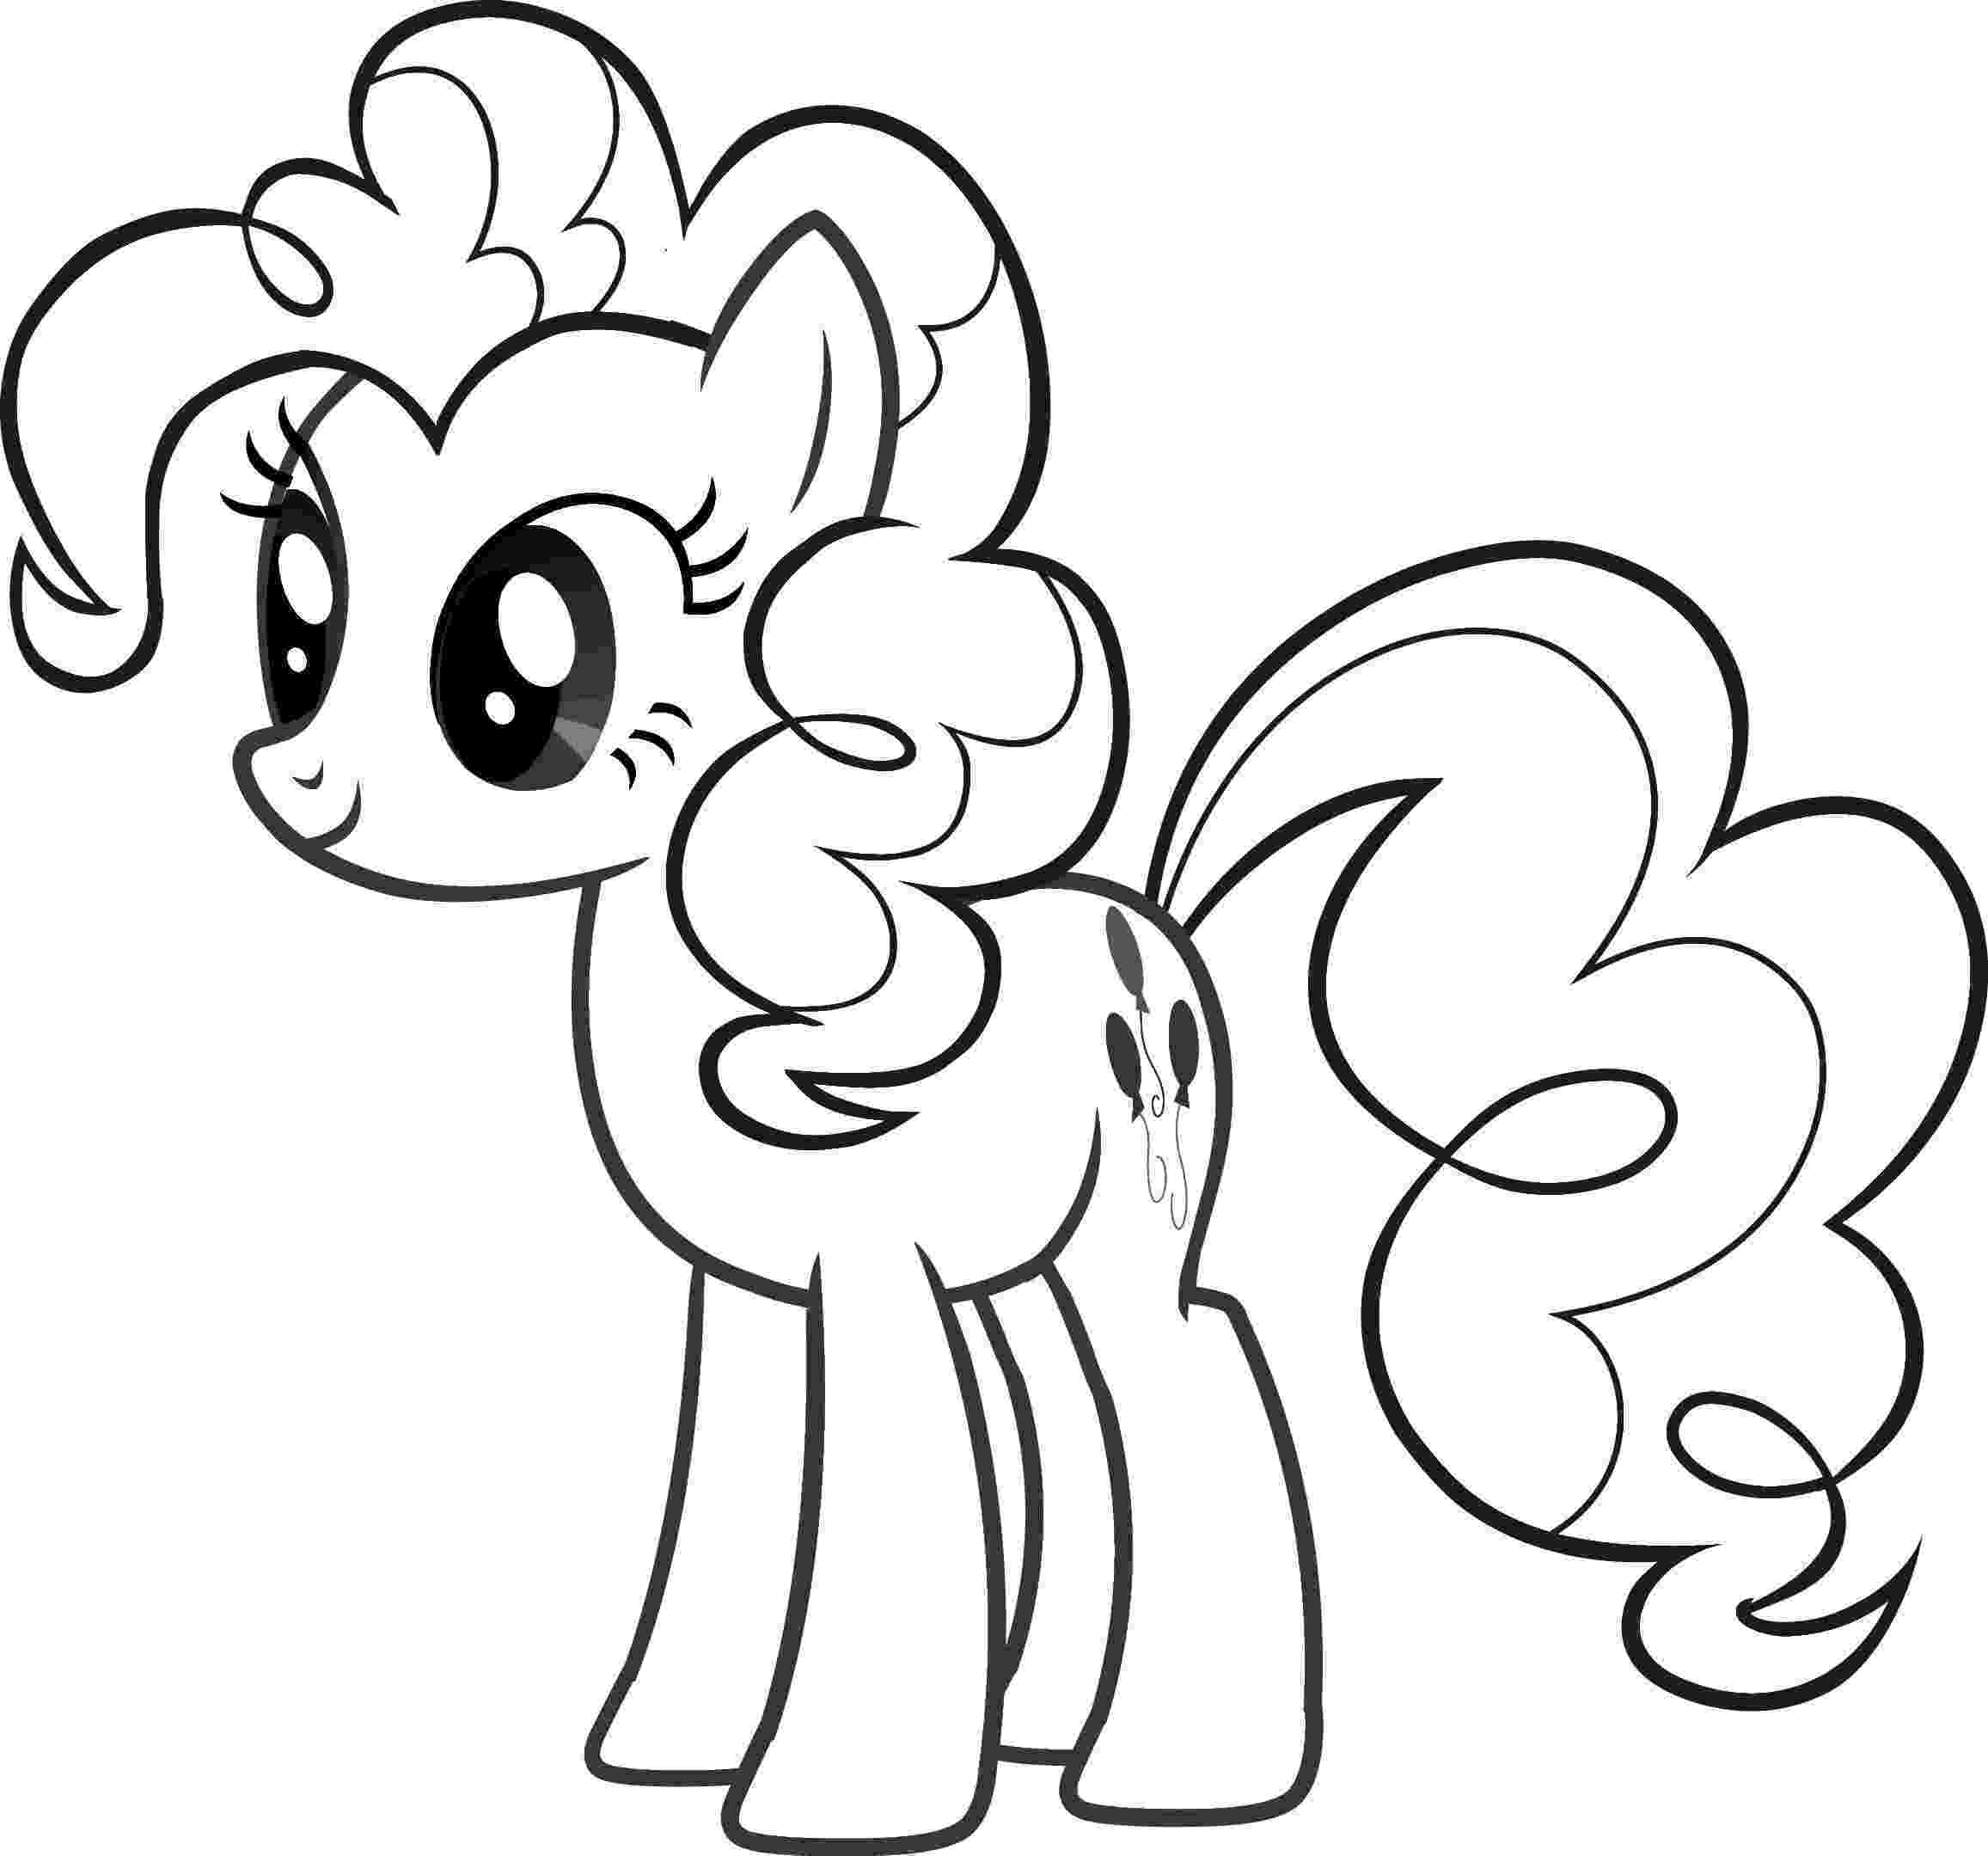 my little pony pages to color my little pony coloring pages friendship is magic team little pages pony to my color